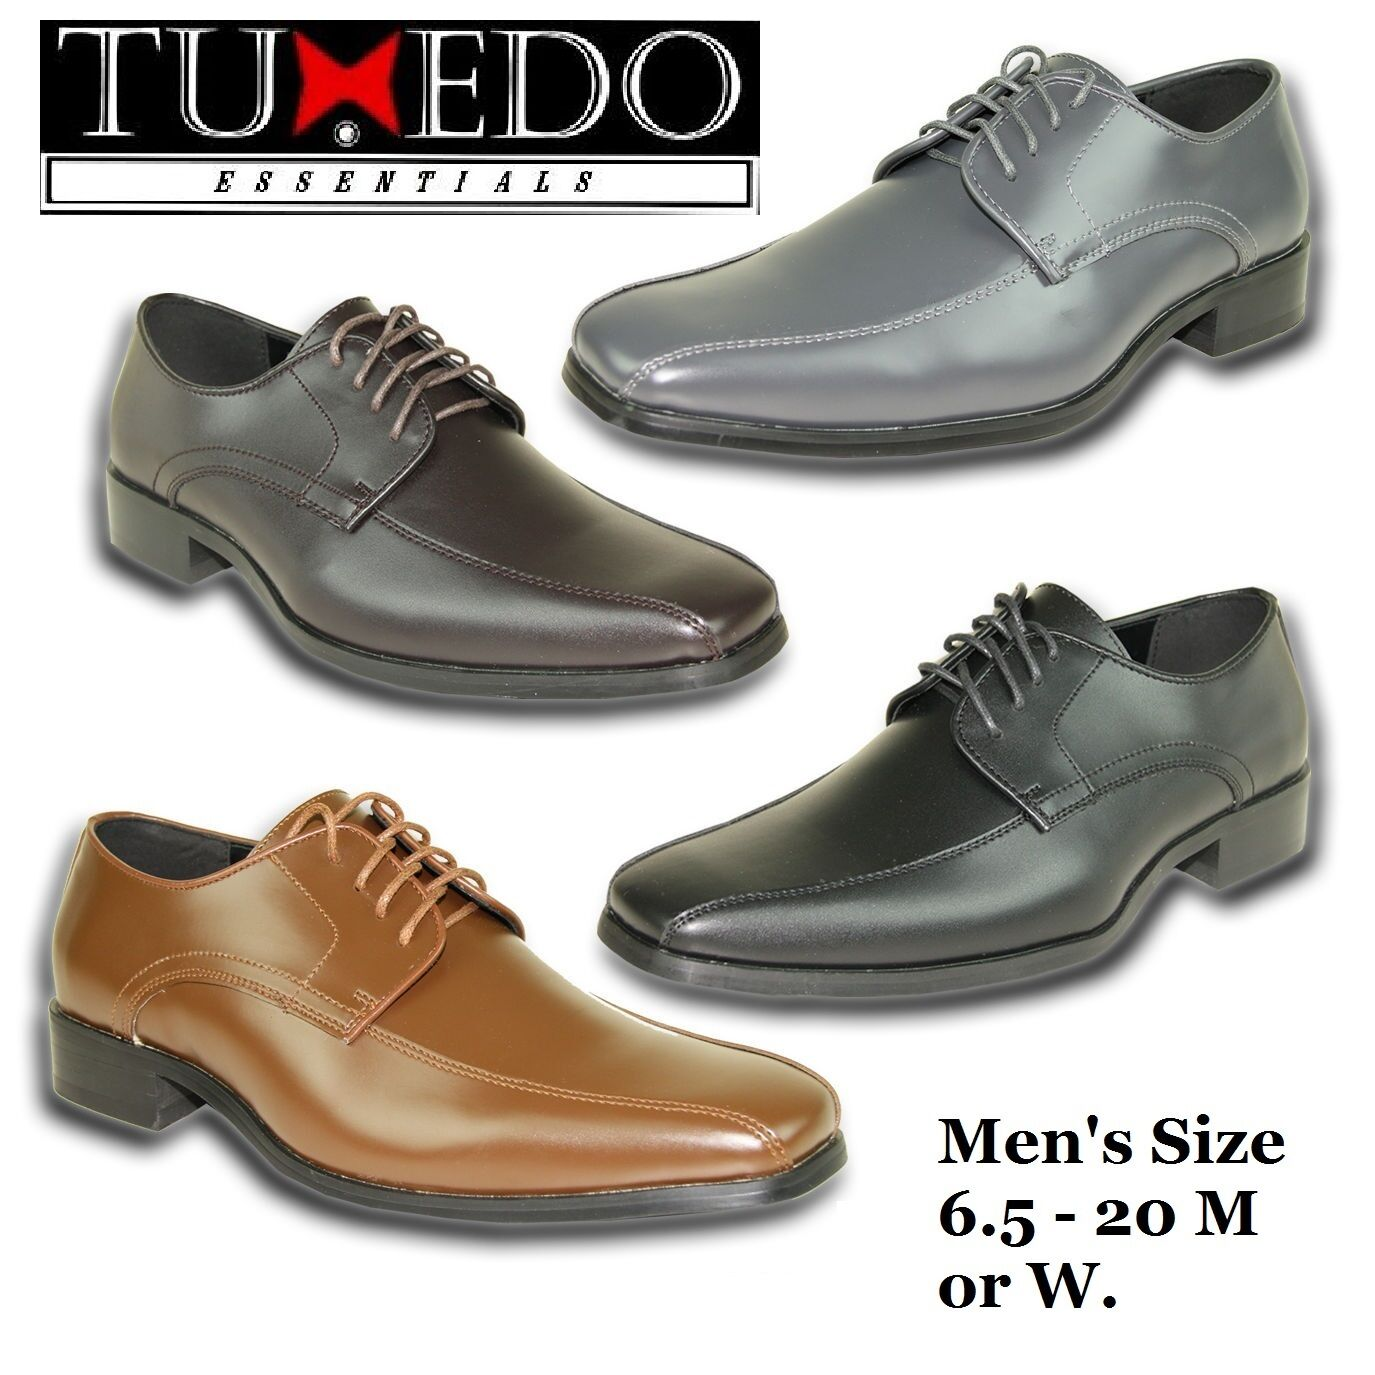 New Classic Mens Dress Shoes Size Classic New Oxford Formal Tuxedo Wedding Prom GIFT Sale 4d3332